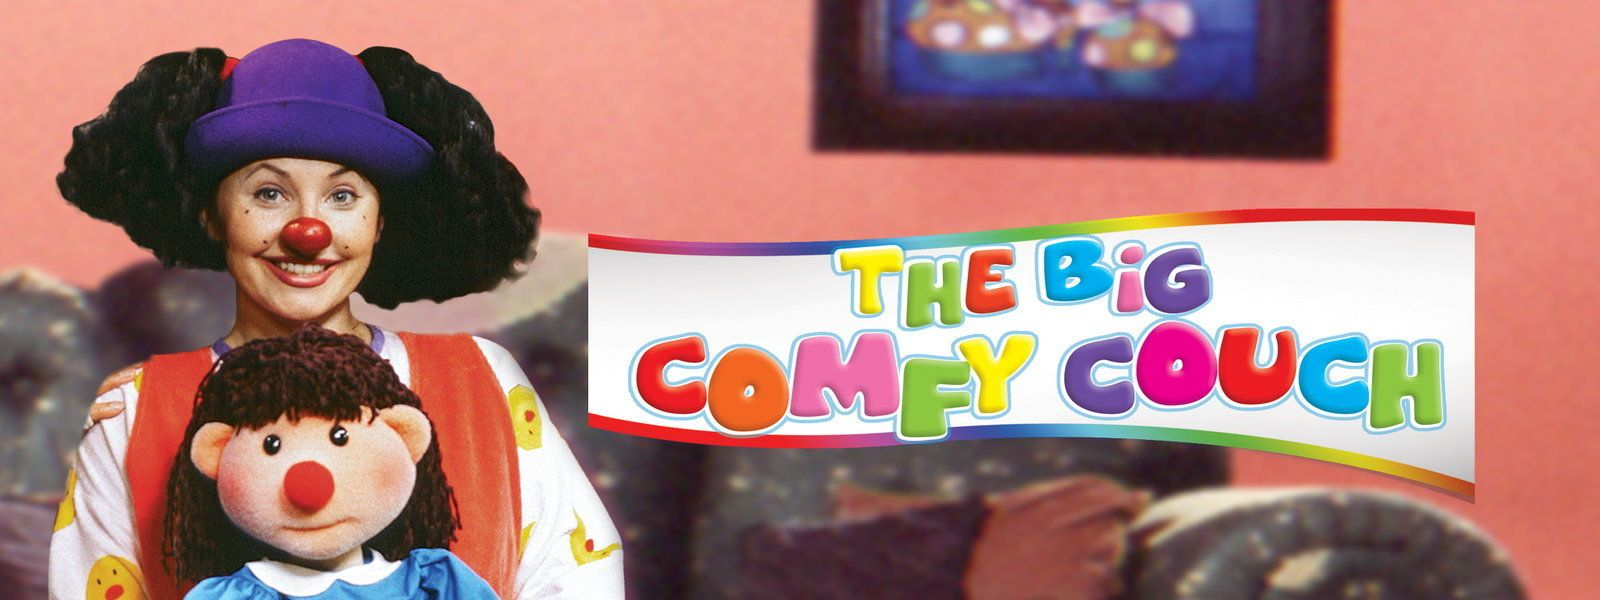 Big Couch Clown Here S What Loonette The Clown From The Big Comfy Couch